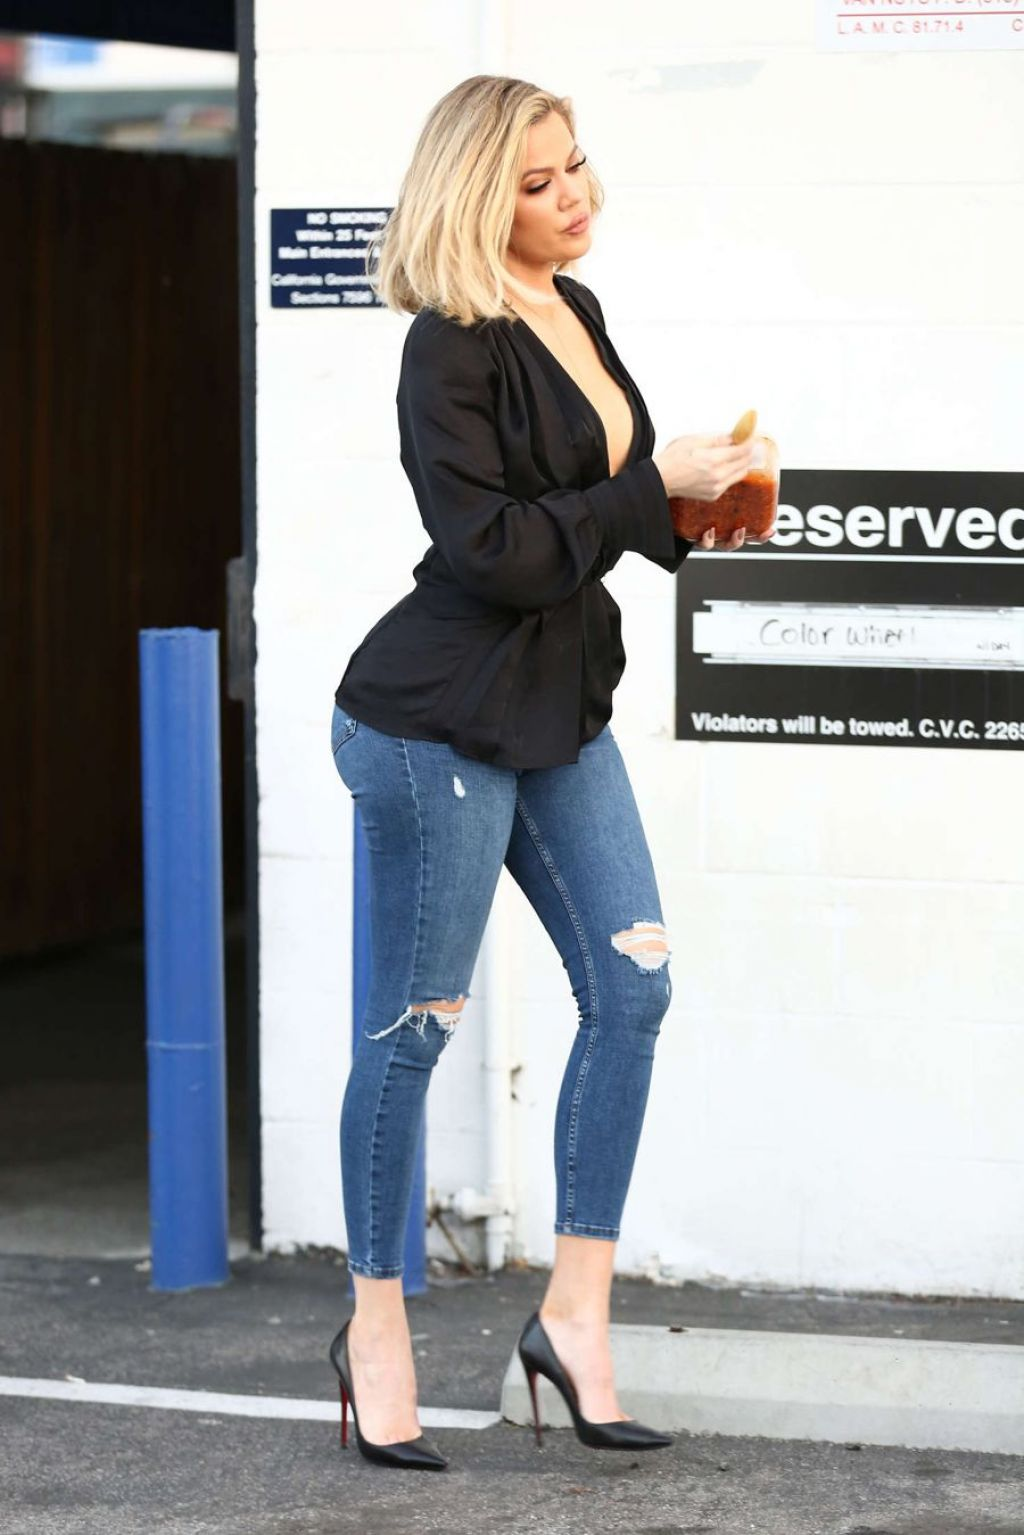 Khloe Kardashian Booty In Tight Jeans Out In Van Nuys In La March